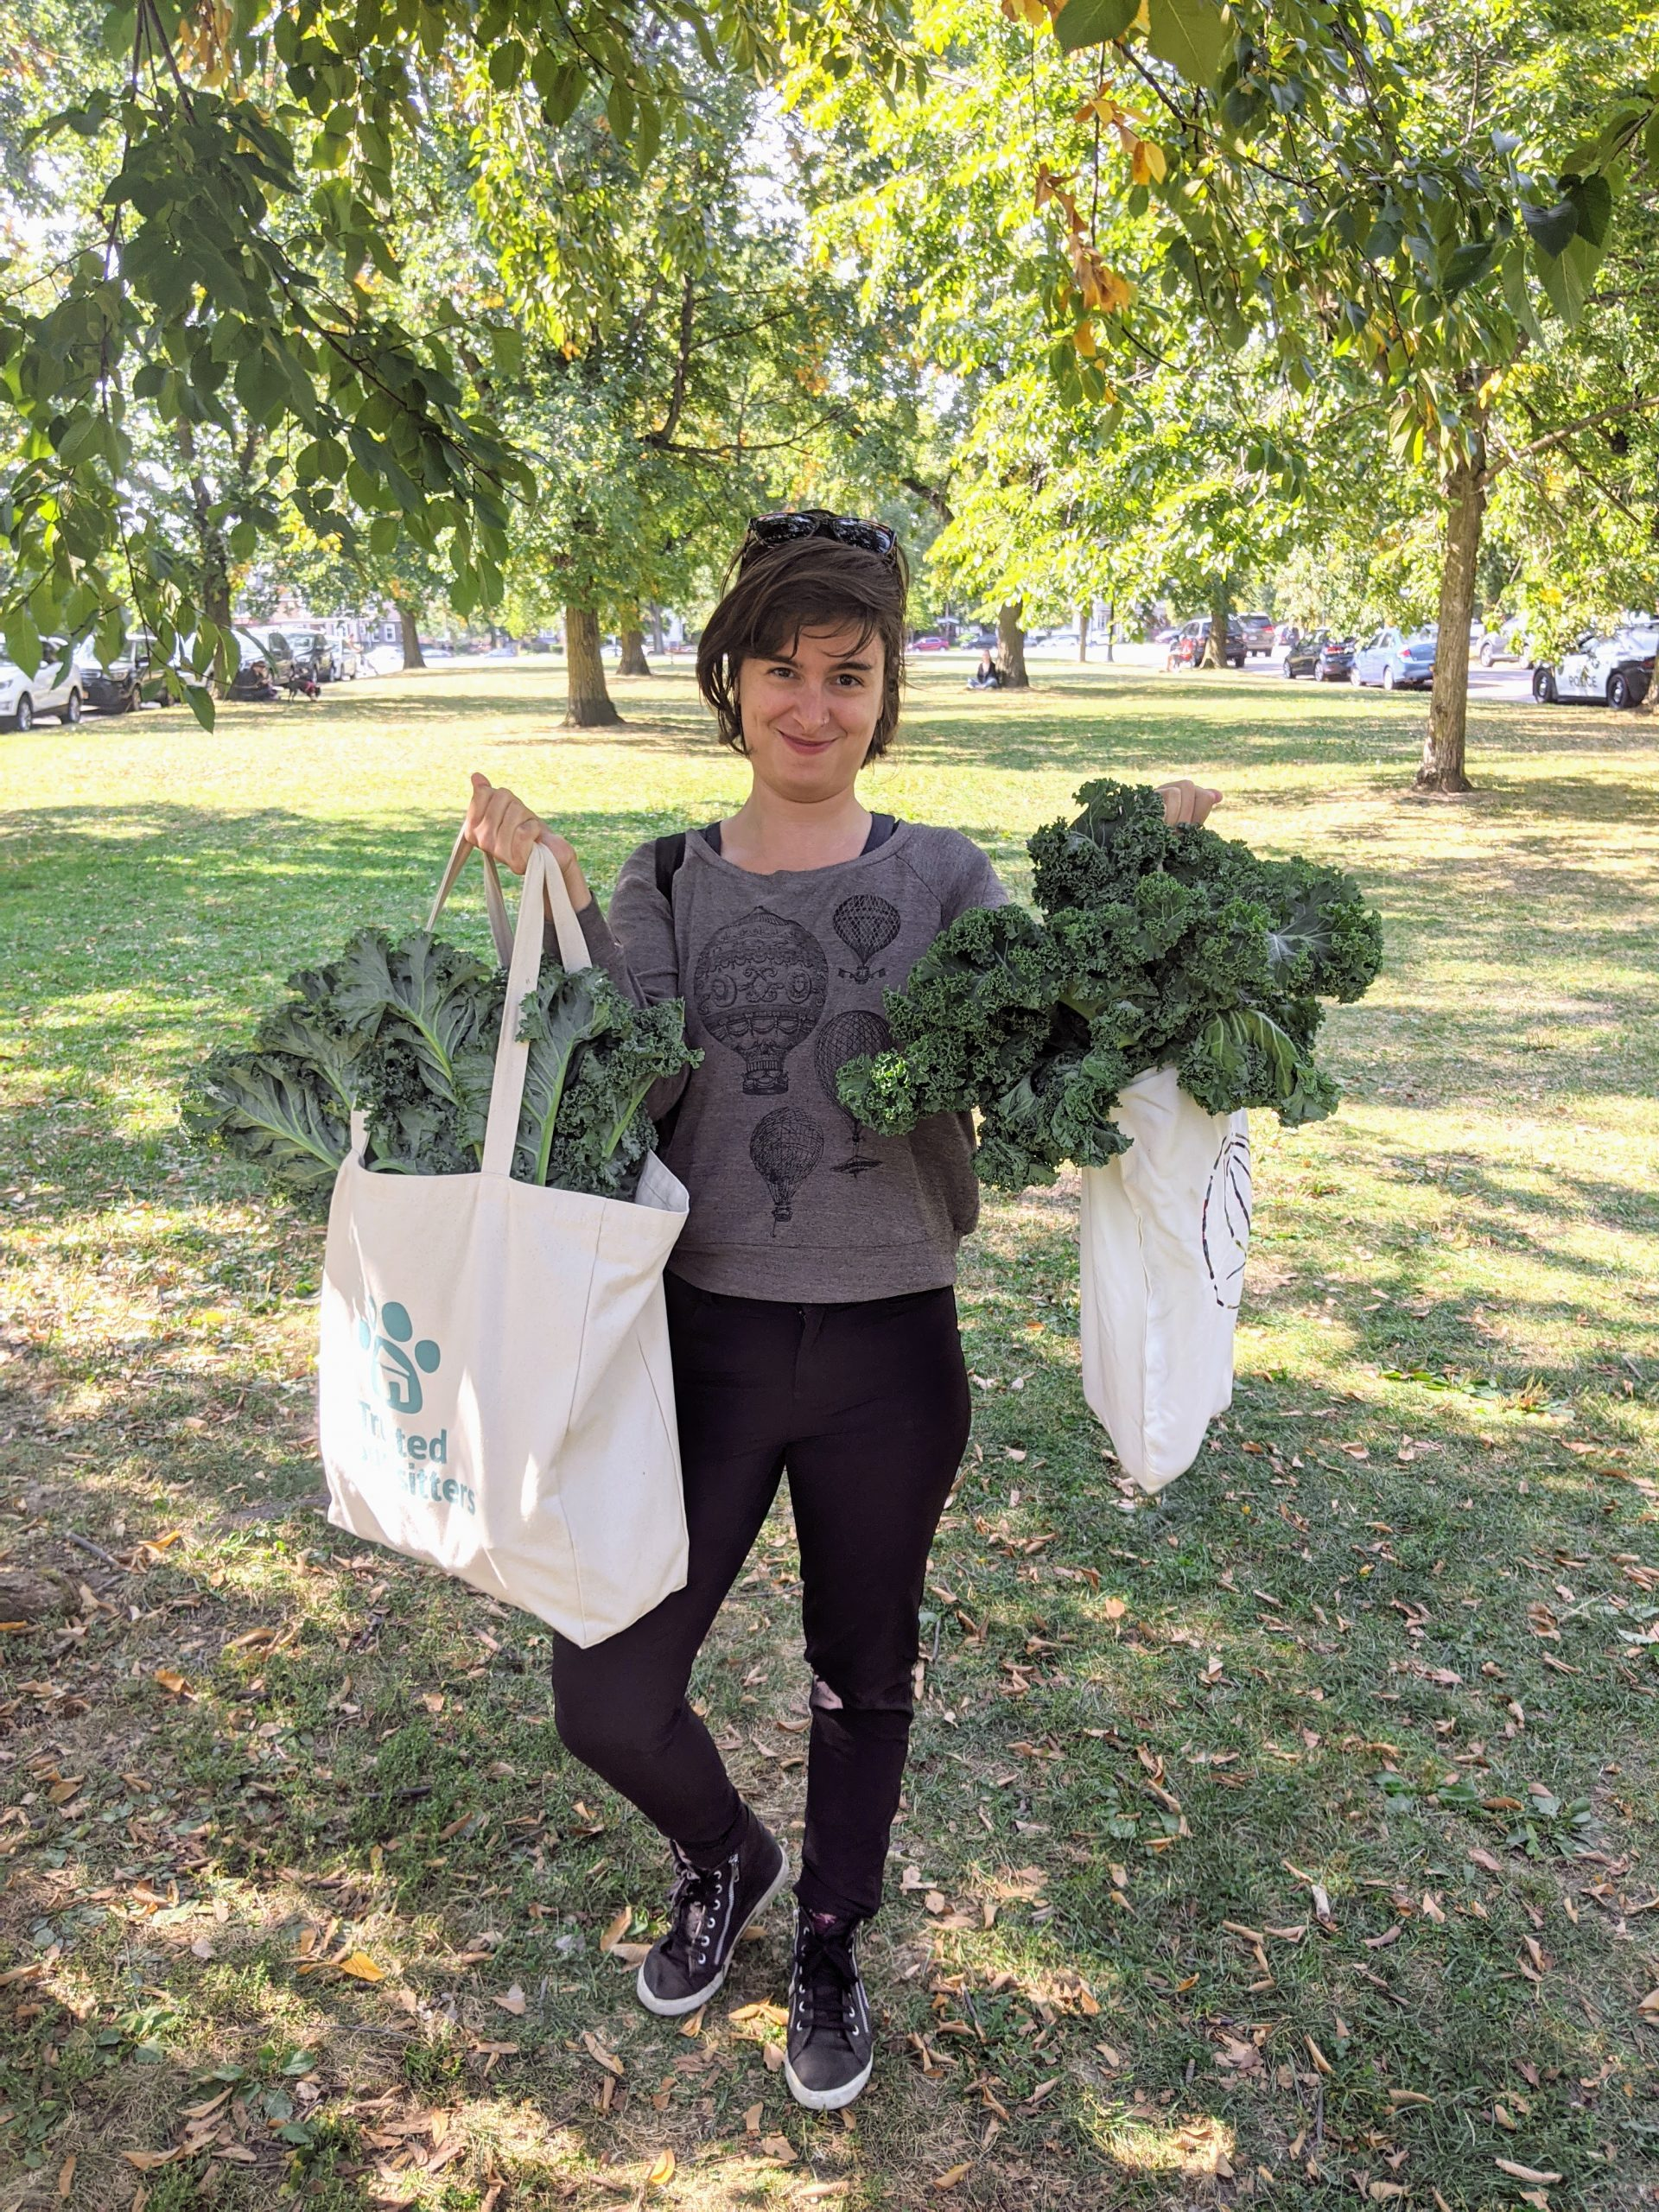 Sam with tote bags full of kale